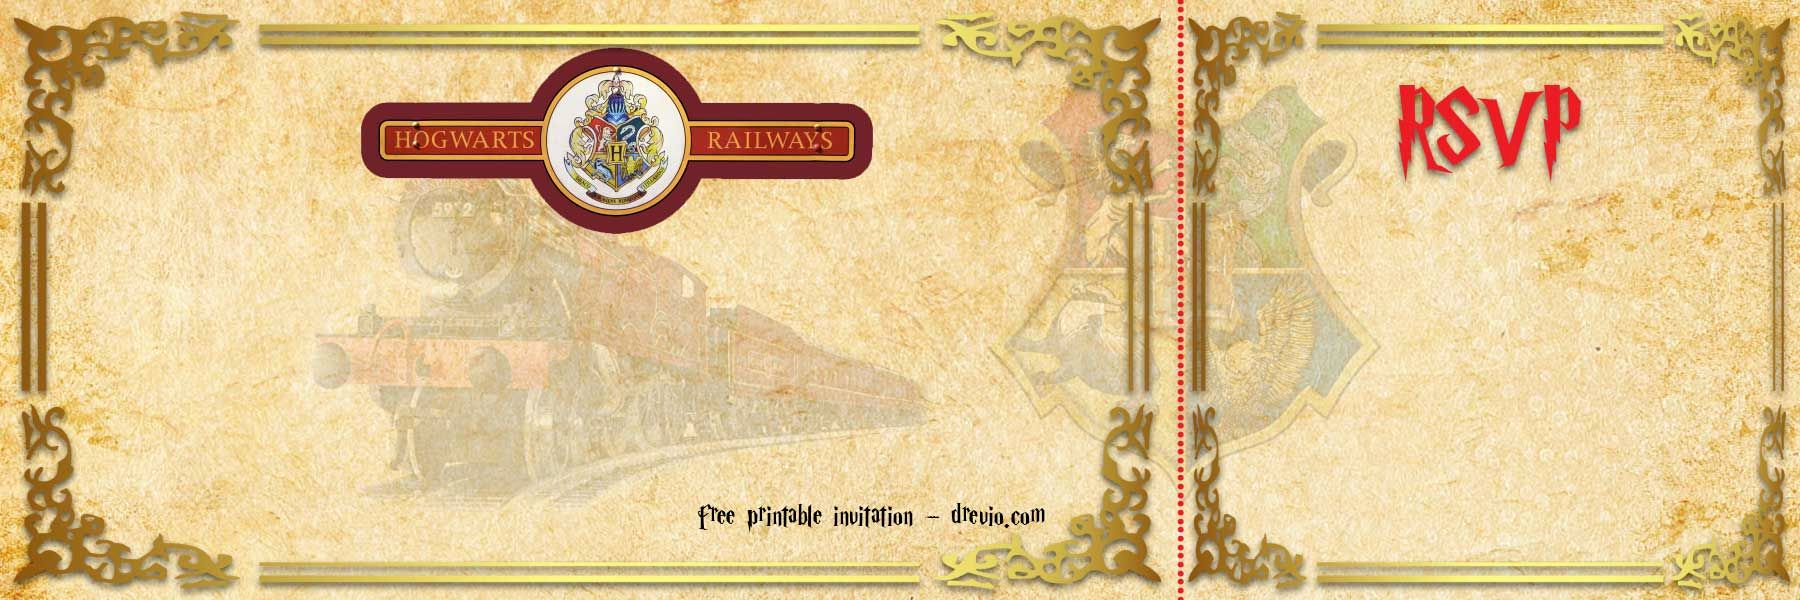 Hogwarts Birthday Invitation Template Luxury Free Printable Hogwarts Express Ticket Invitation Template